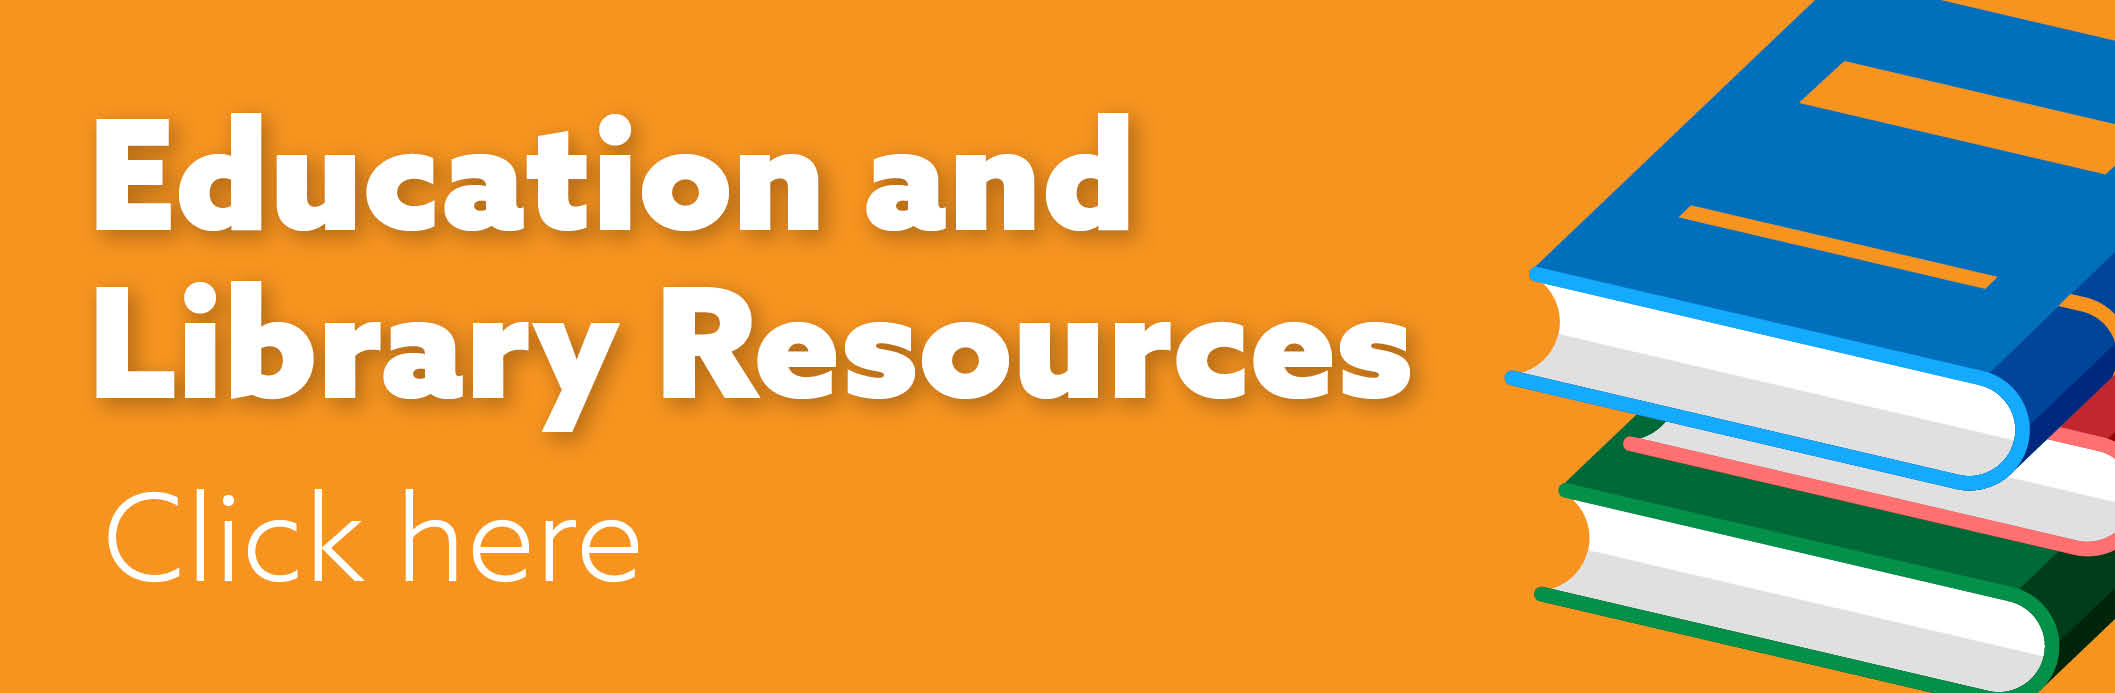 Education and Library Resources